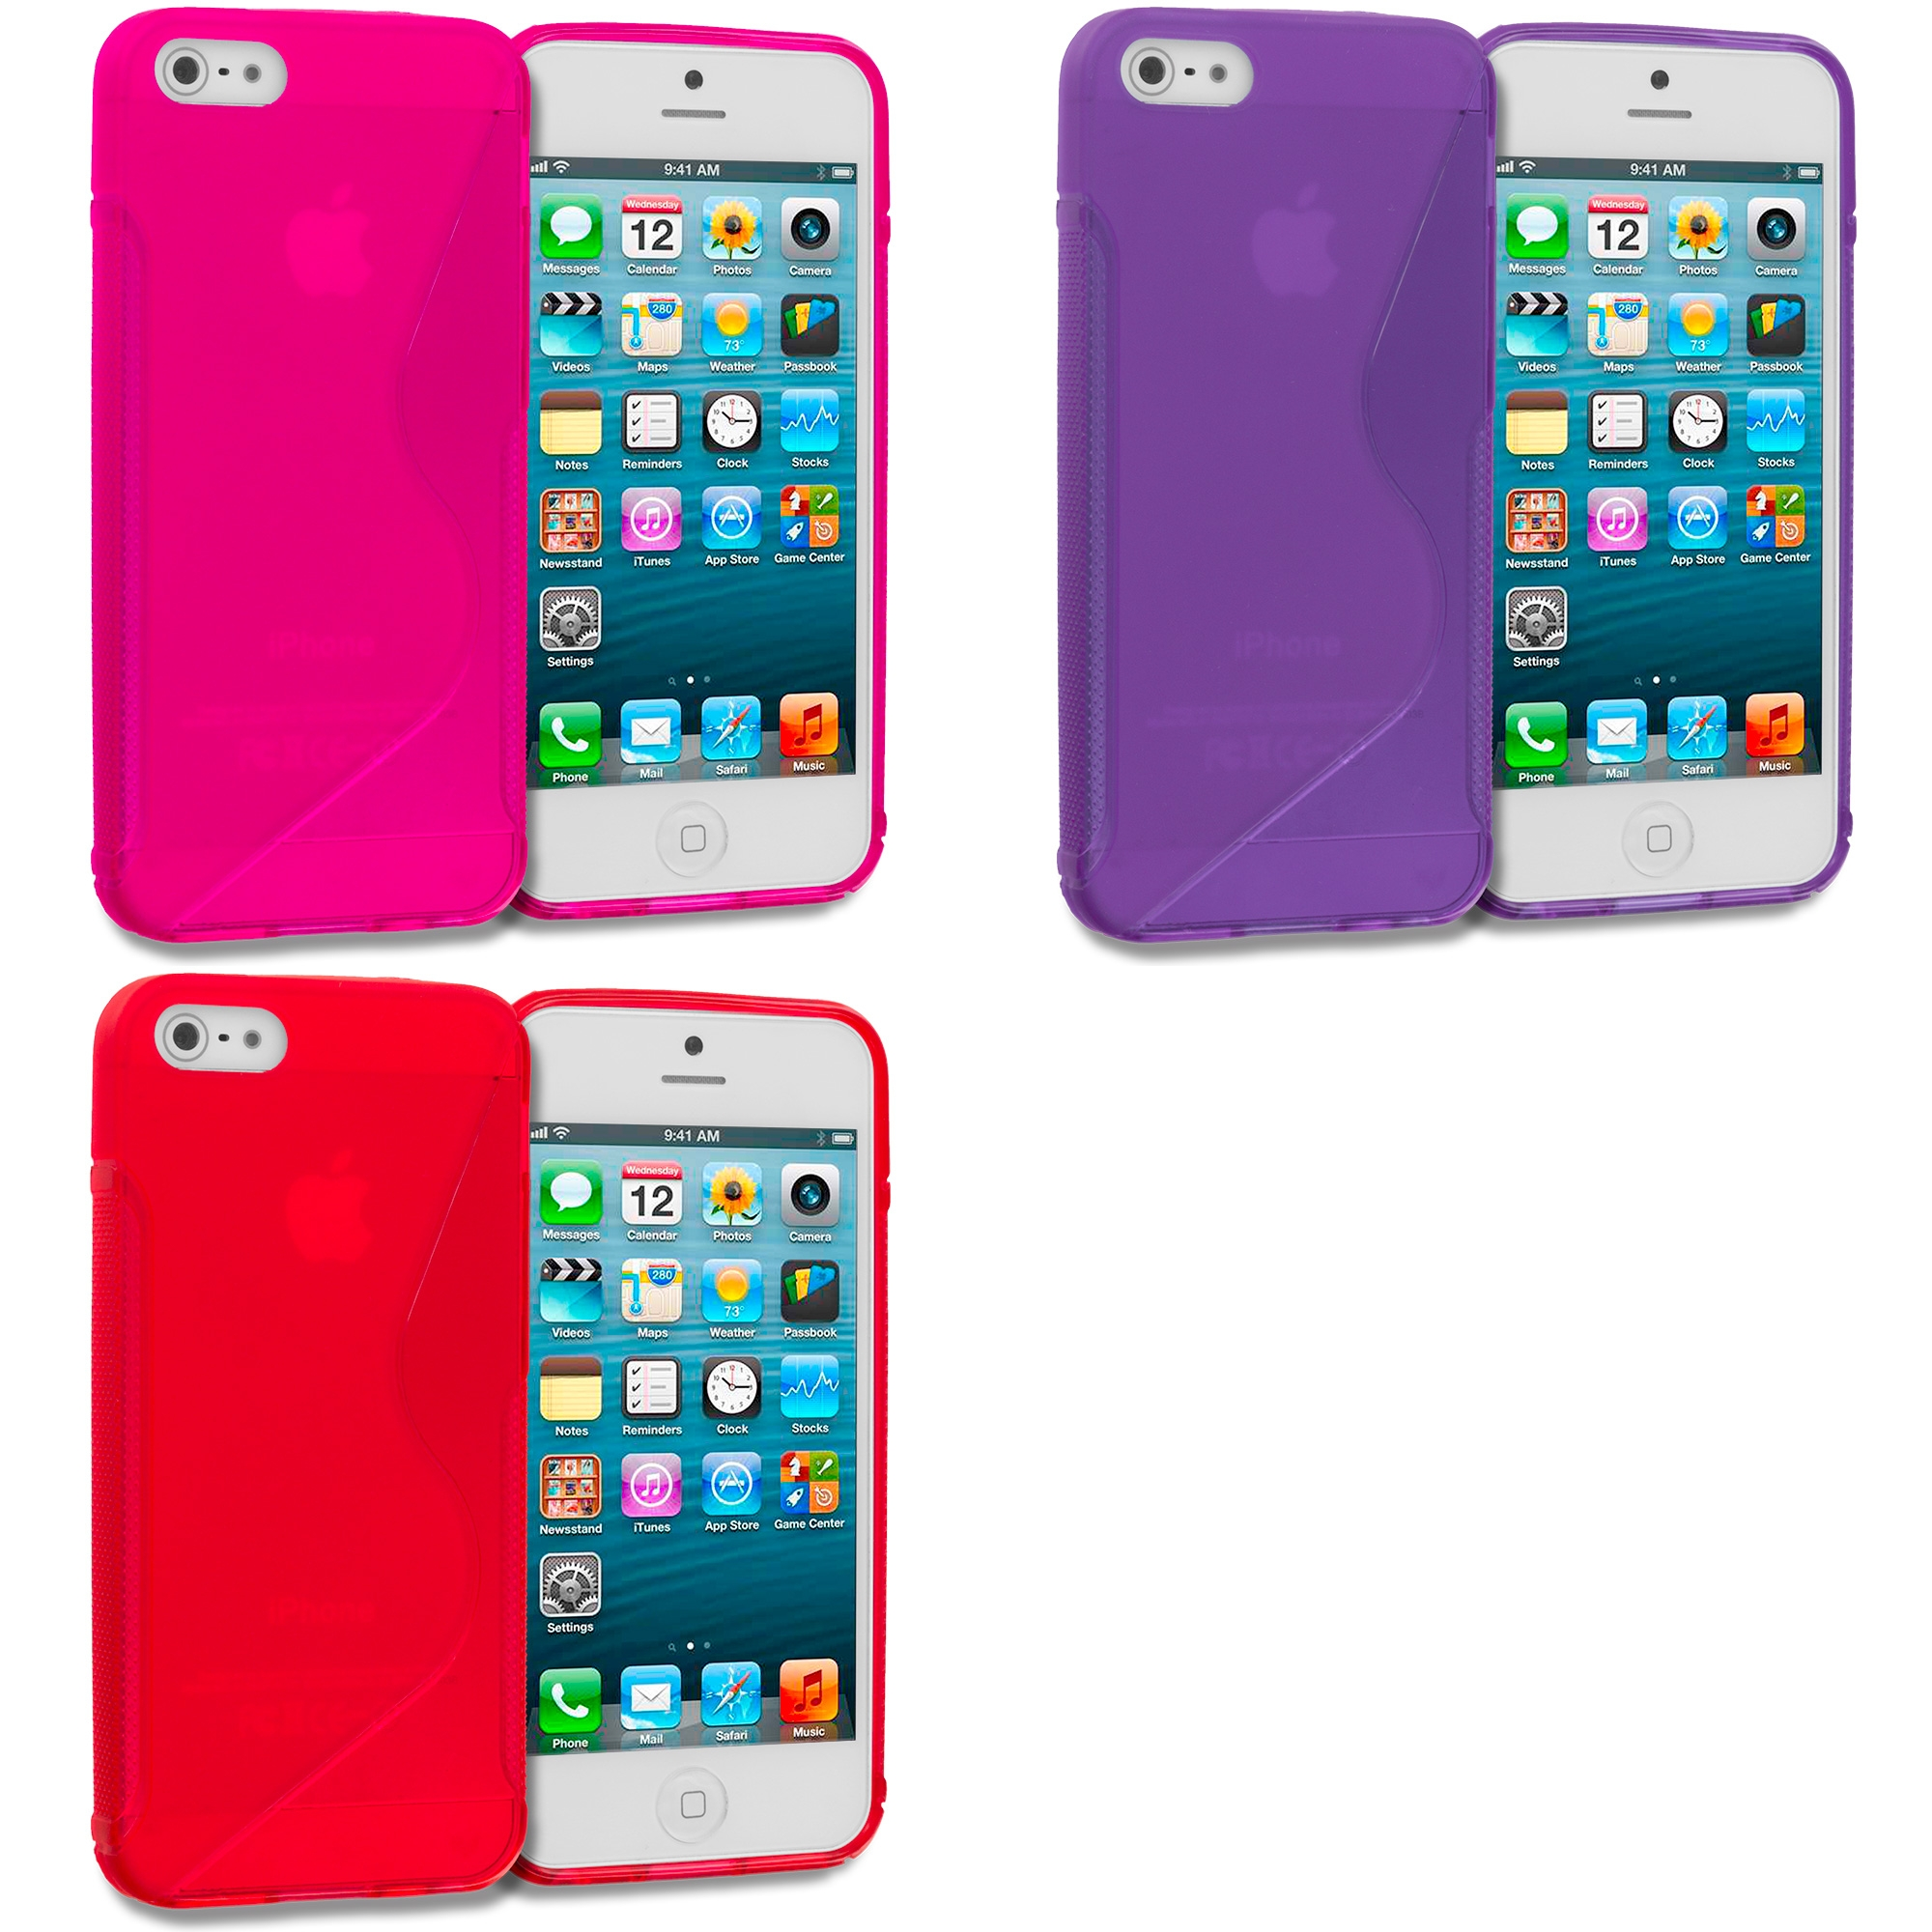 Apple iPhone 5/5S/SE Combo Pack : Hot Pink S-Line TPU Rubber Skin Case Cover